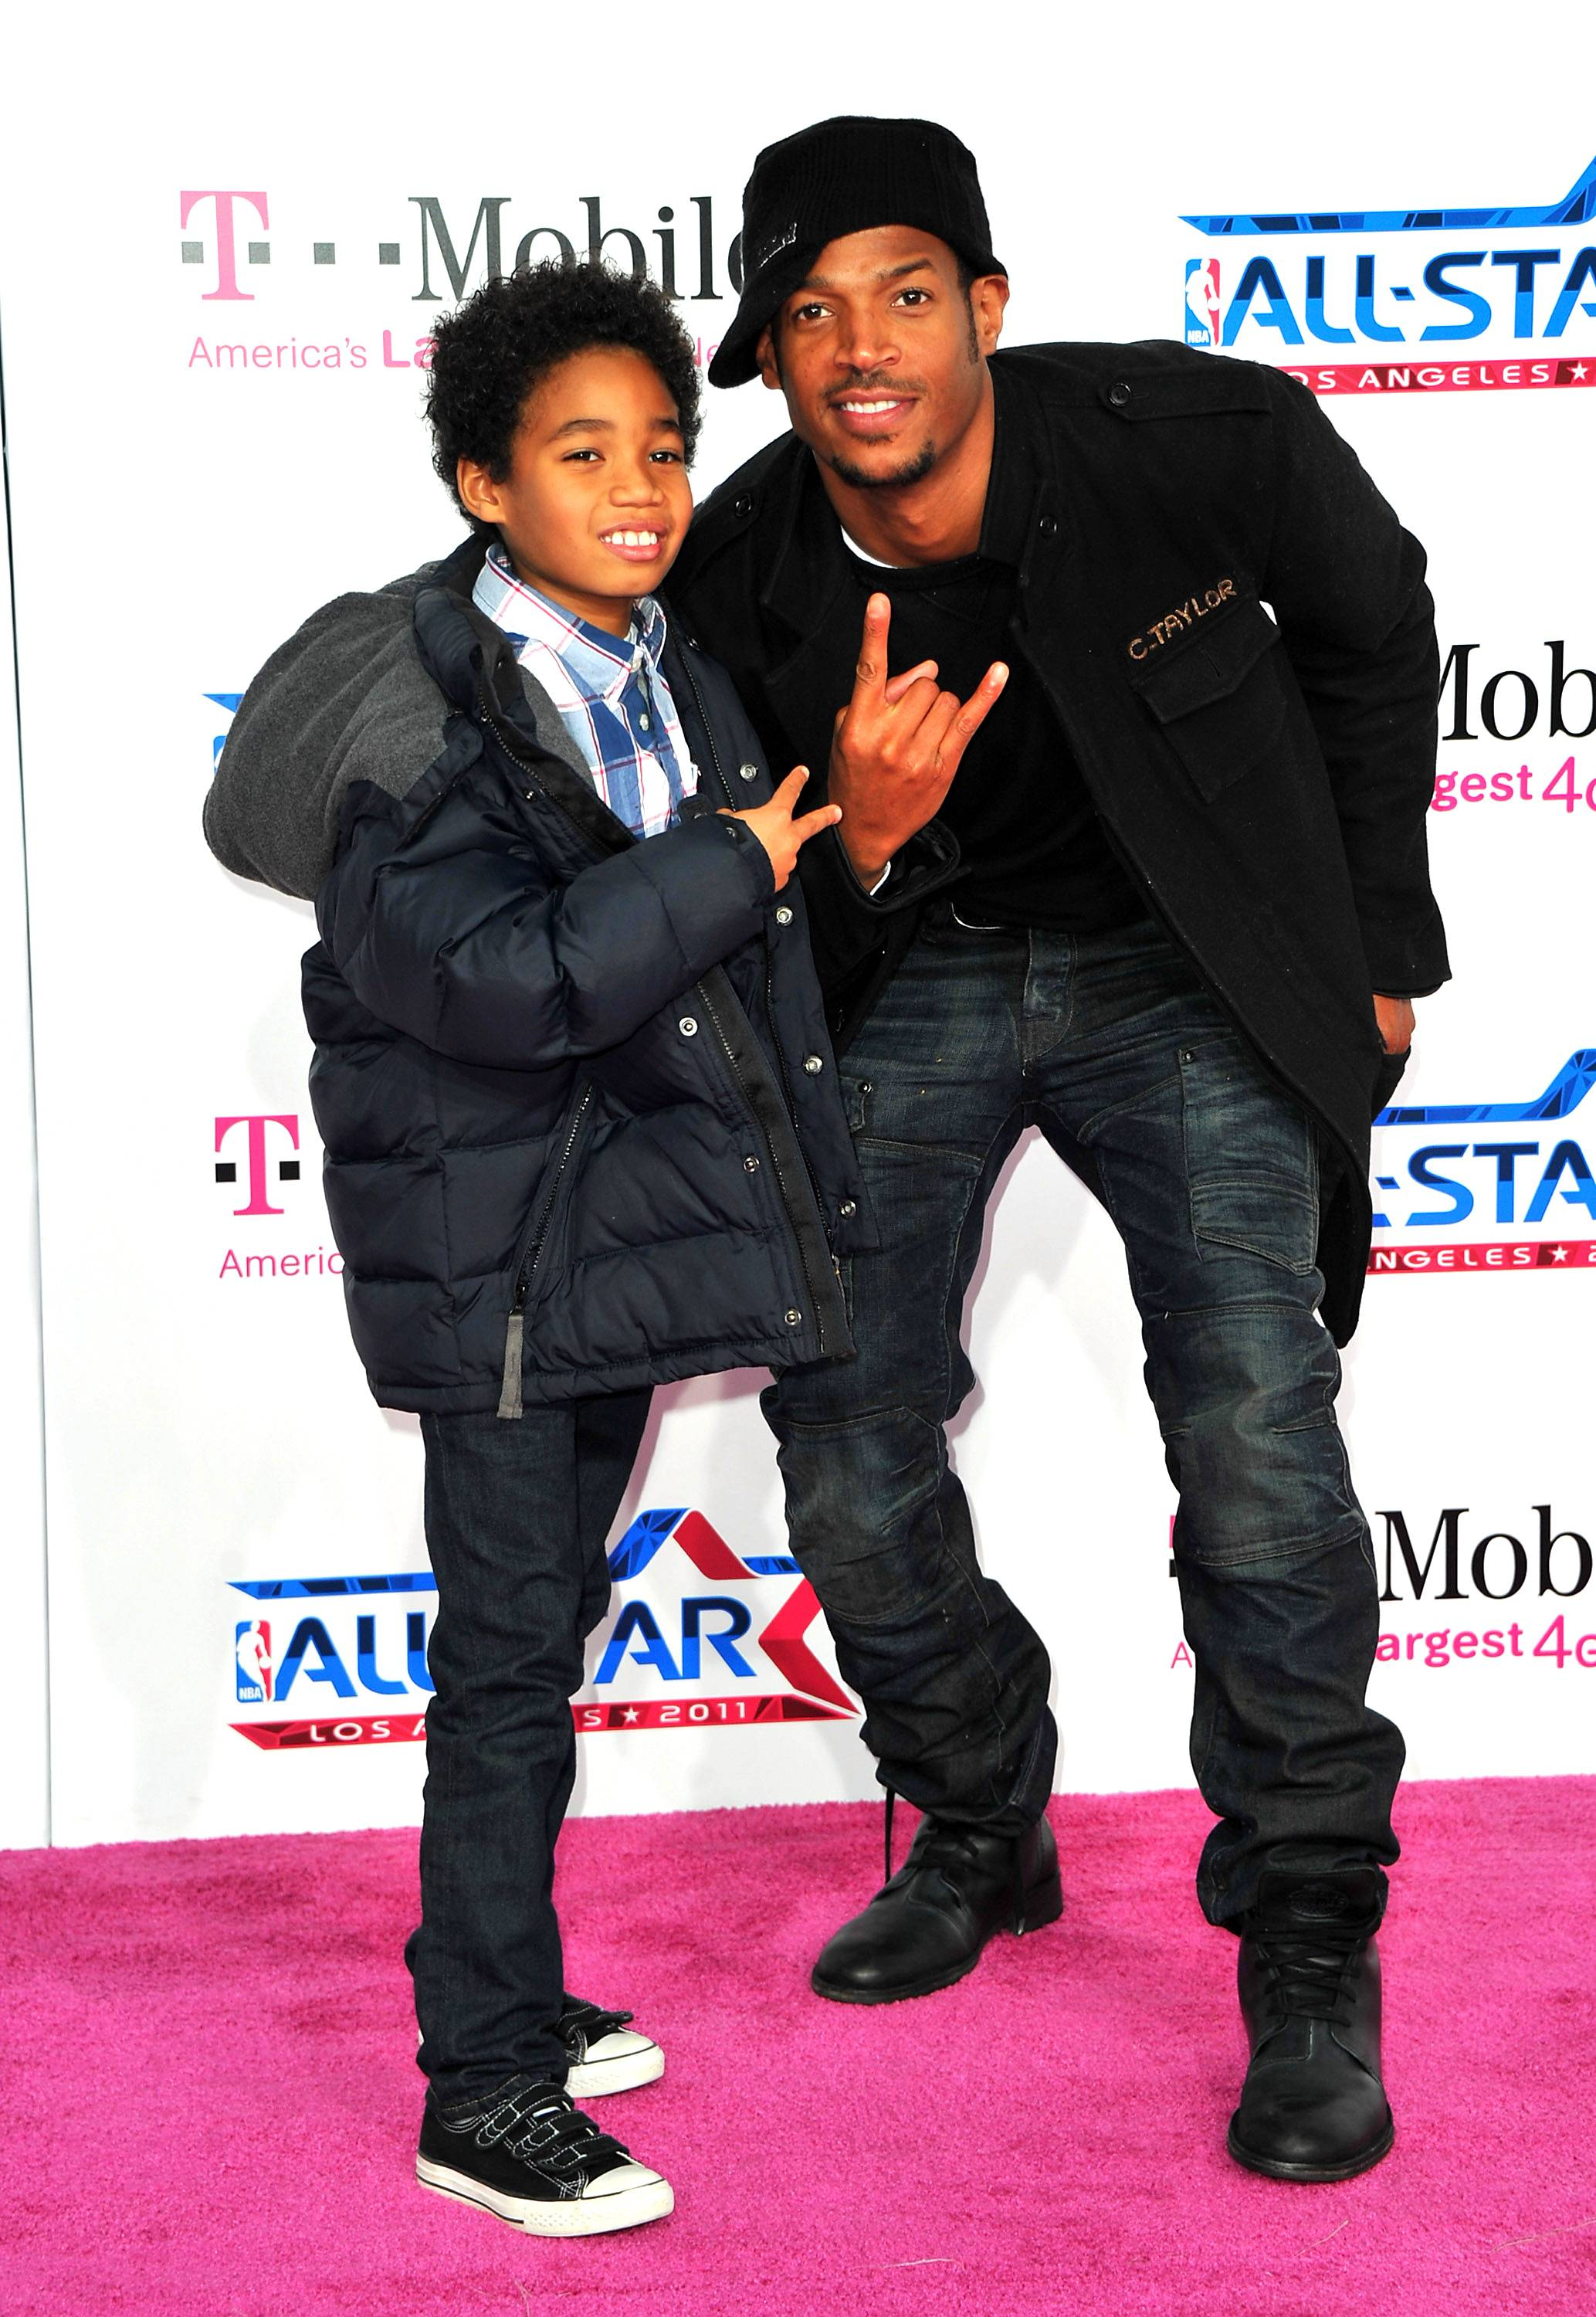 """Marlon Wayans - Marlon Wayans recently tweeted: """"My son is cute. He lends my daddy services to all his friends that don't have fathers. He's like """"u can call my dad, dad. Right dad?""""(Photo: Alberto E. Rodriguez/Getty Imagaes)"""